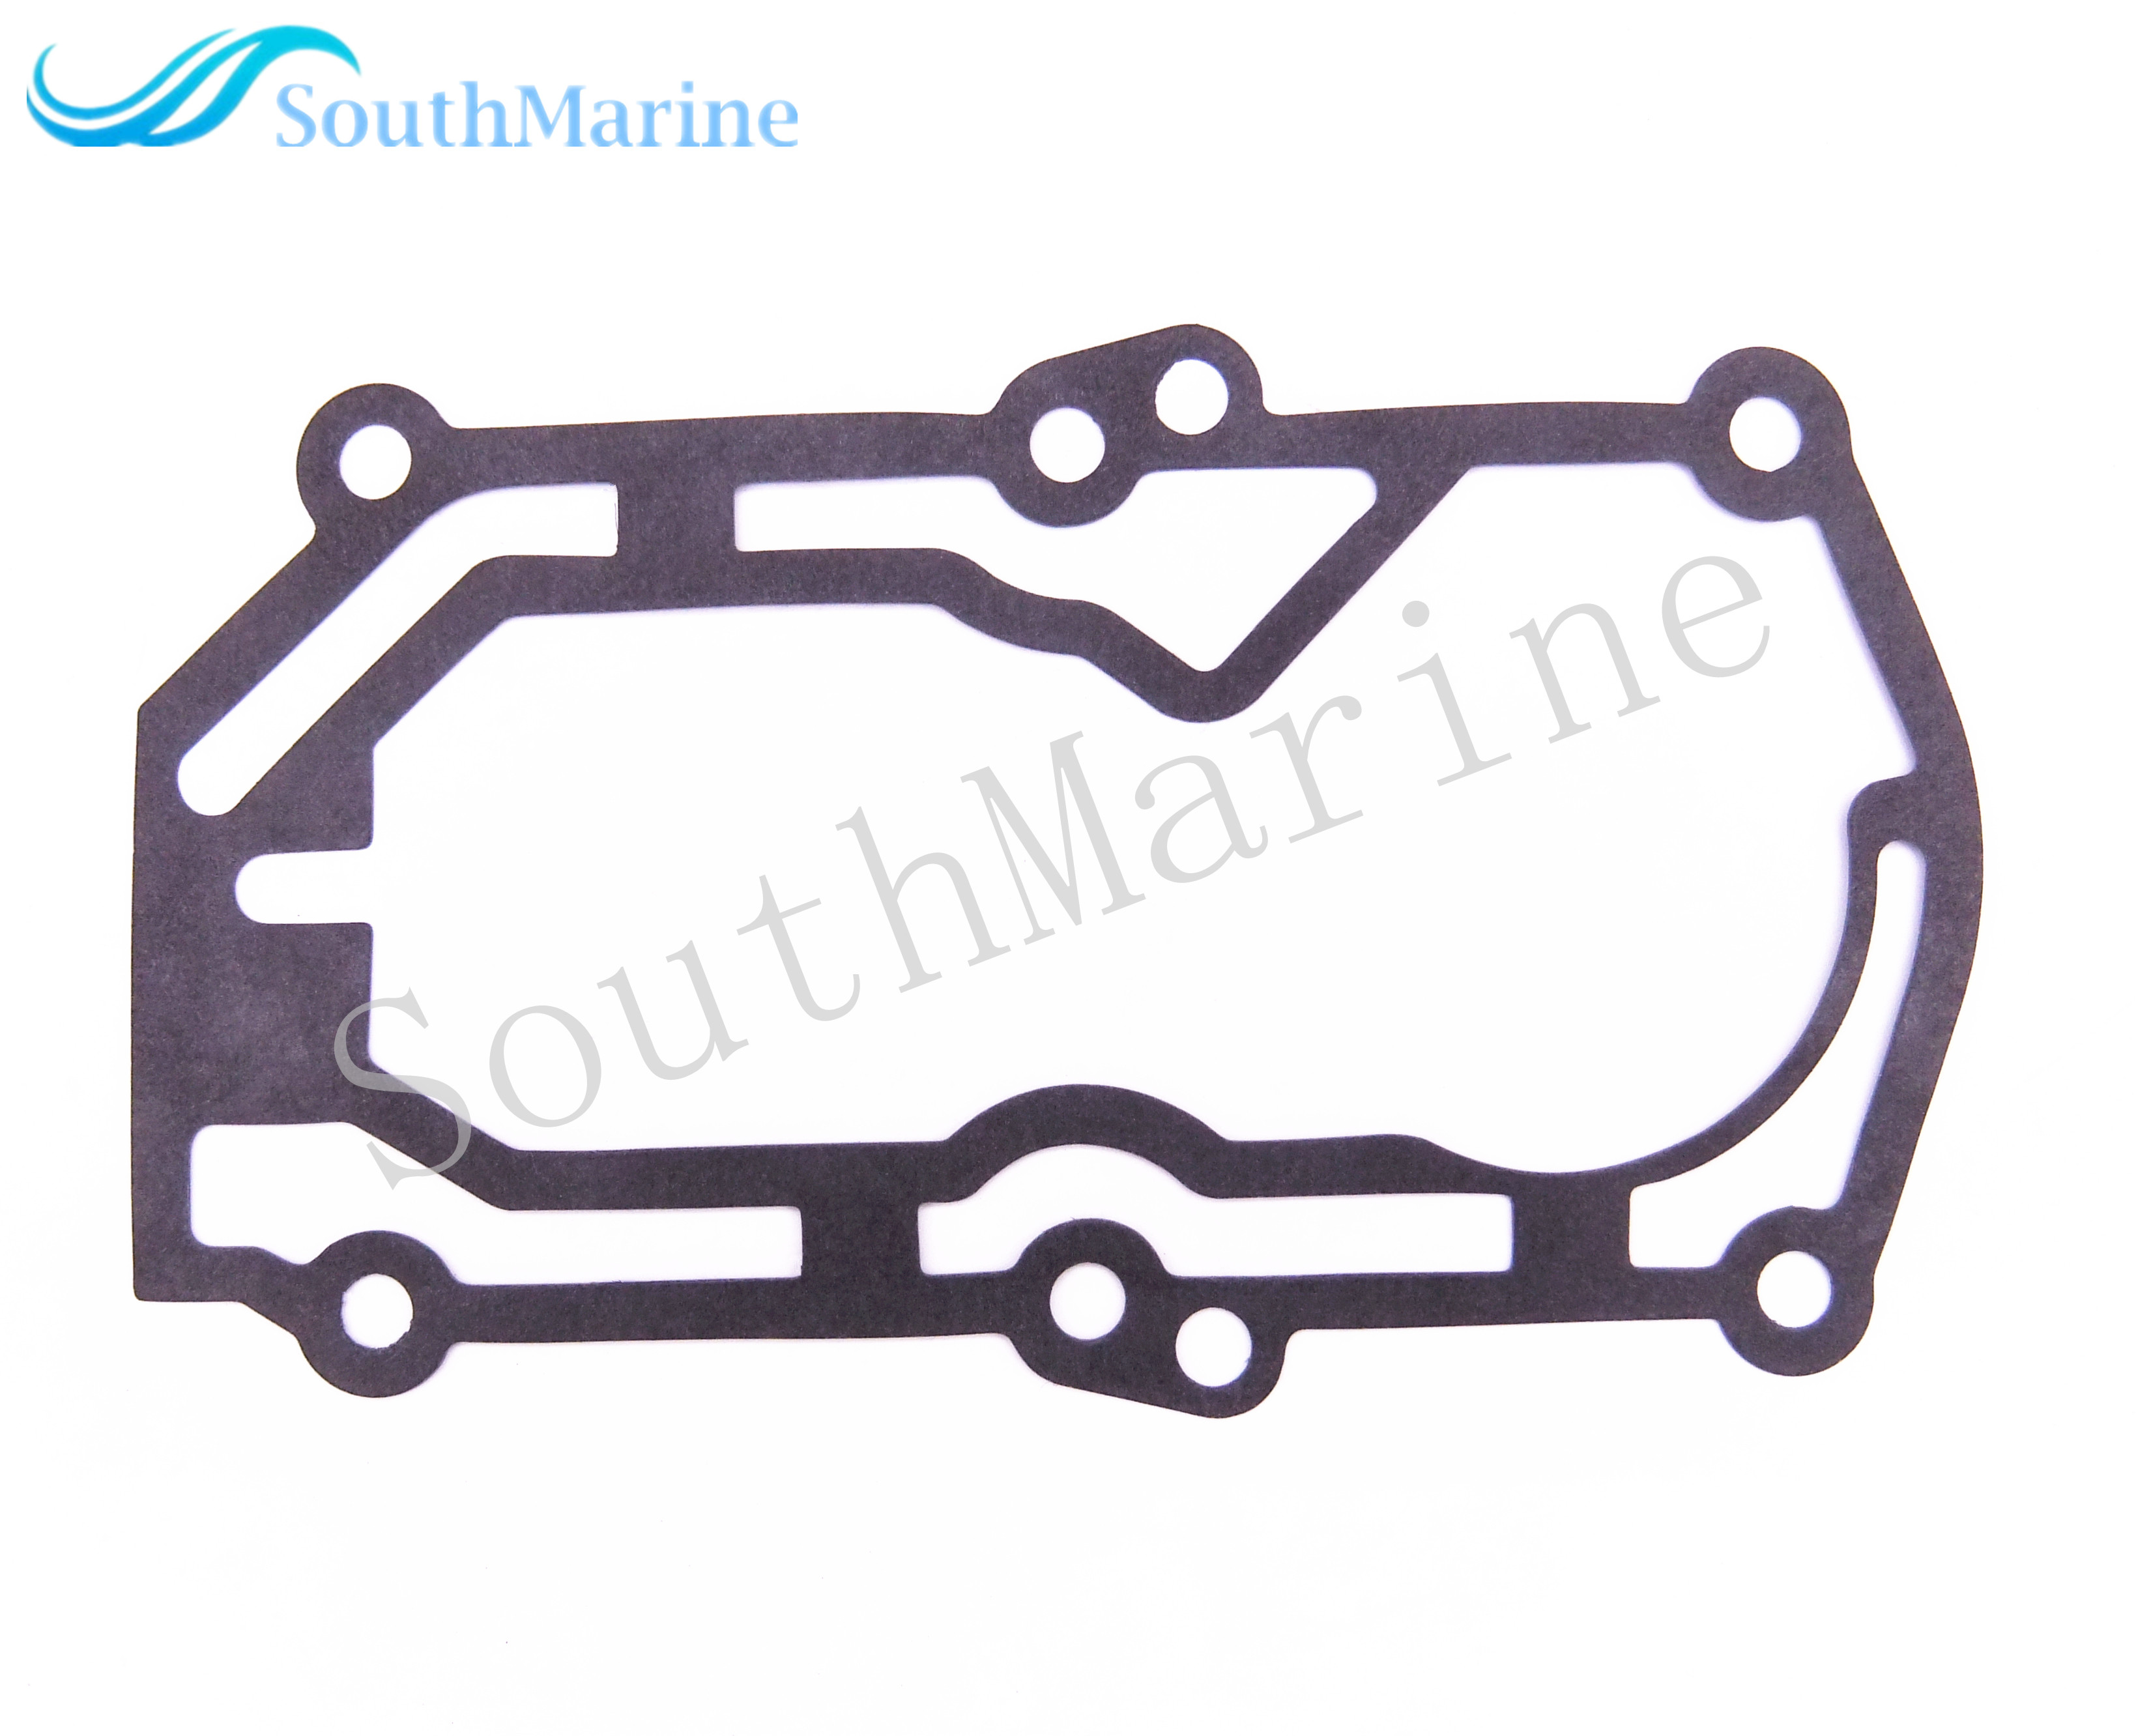 Boat Motor 309-61012-1 30961-0121M Drive Shaft Housing Gasket for Tohatsu Nissan 2-Stroke 2.5HP 3.5HP Outboard Engine